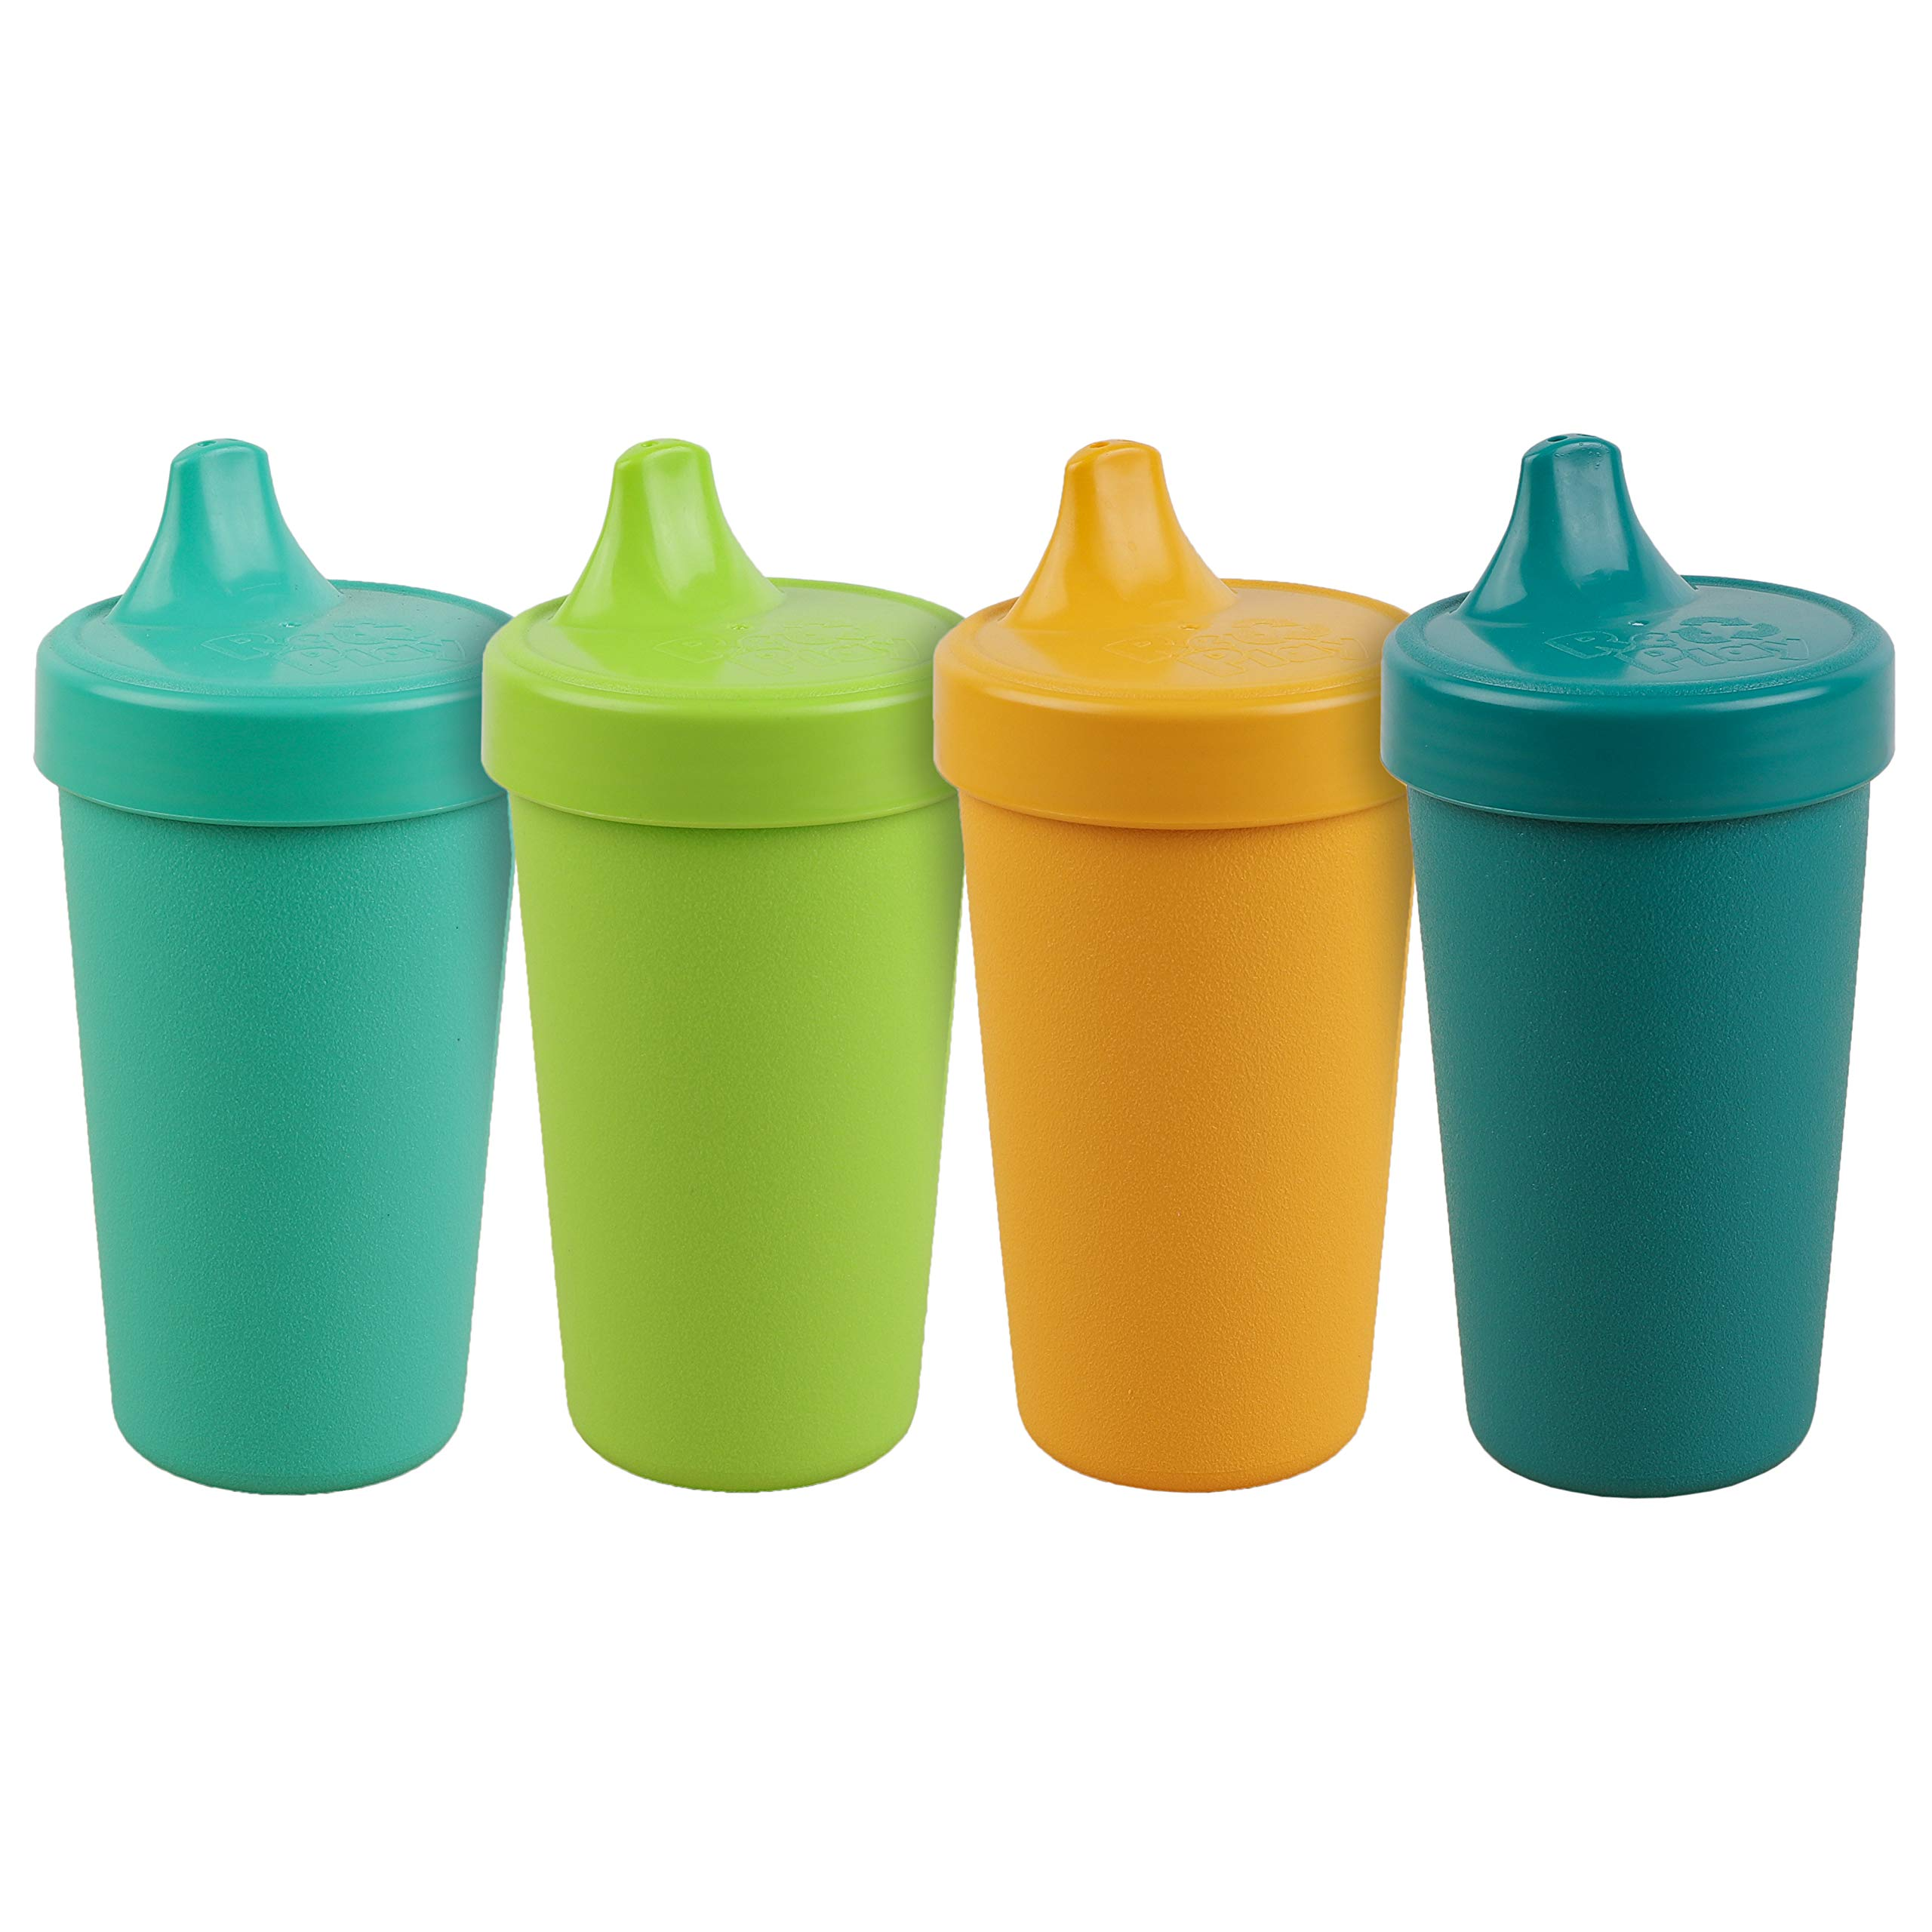 Re-Play Made in The USA 4pk No Spill Cups for Baby, Toddler, and Child Feeding in Aqua, Lime Green, Sunny Yellow and Teal | Made from Eco Friendly Heavyweight Recycled Milk Jugs | (Aqua Asst.+)